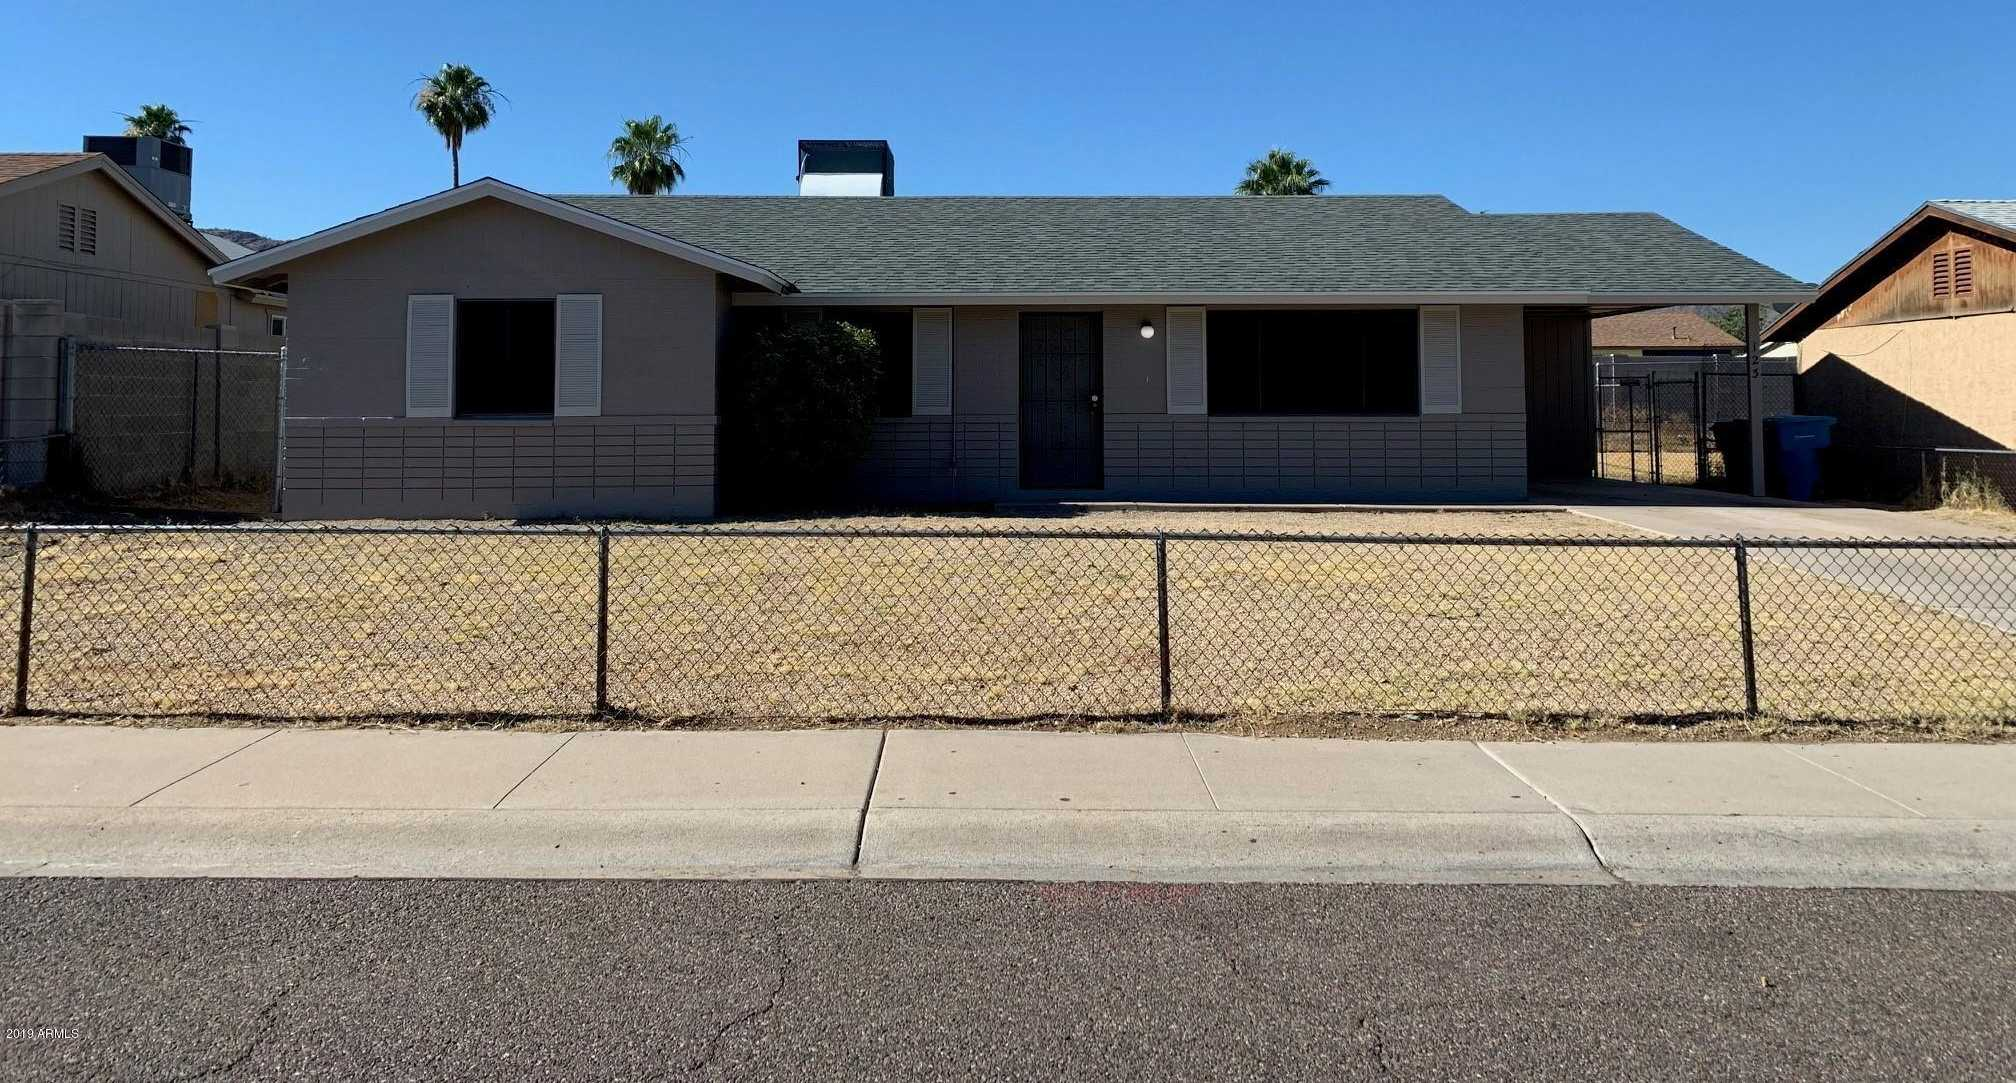 $200,000 - 4Br/2Ba - Home for Sale in Valley View Manor 4, Phoenix